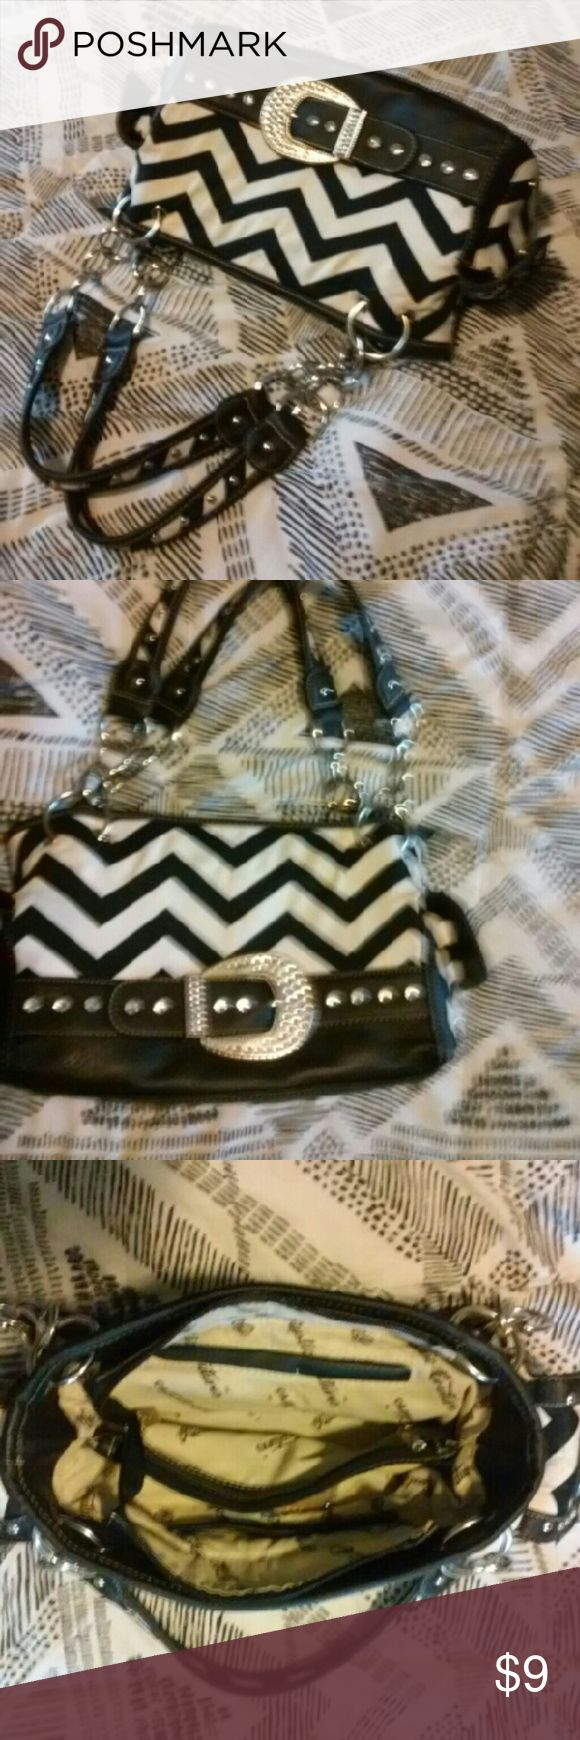 Rustic Coutures chevron purse N.w.t., never used. Super cute, just have too many. Rustic coutures Bags Satchels